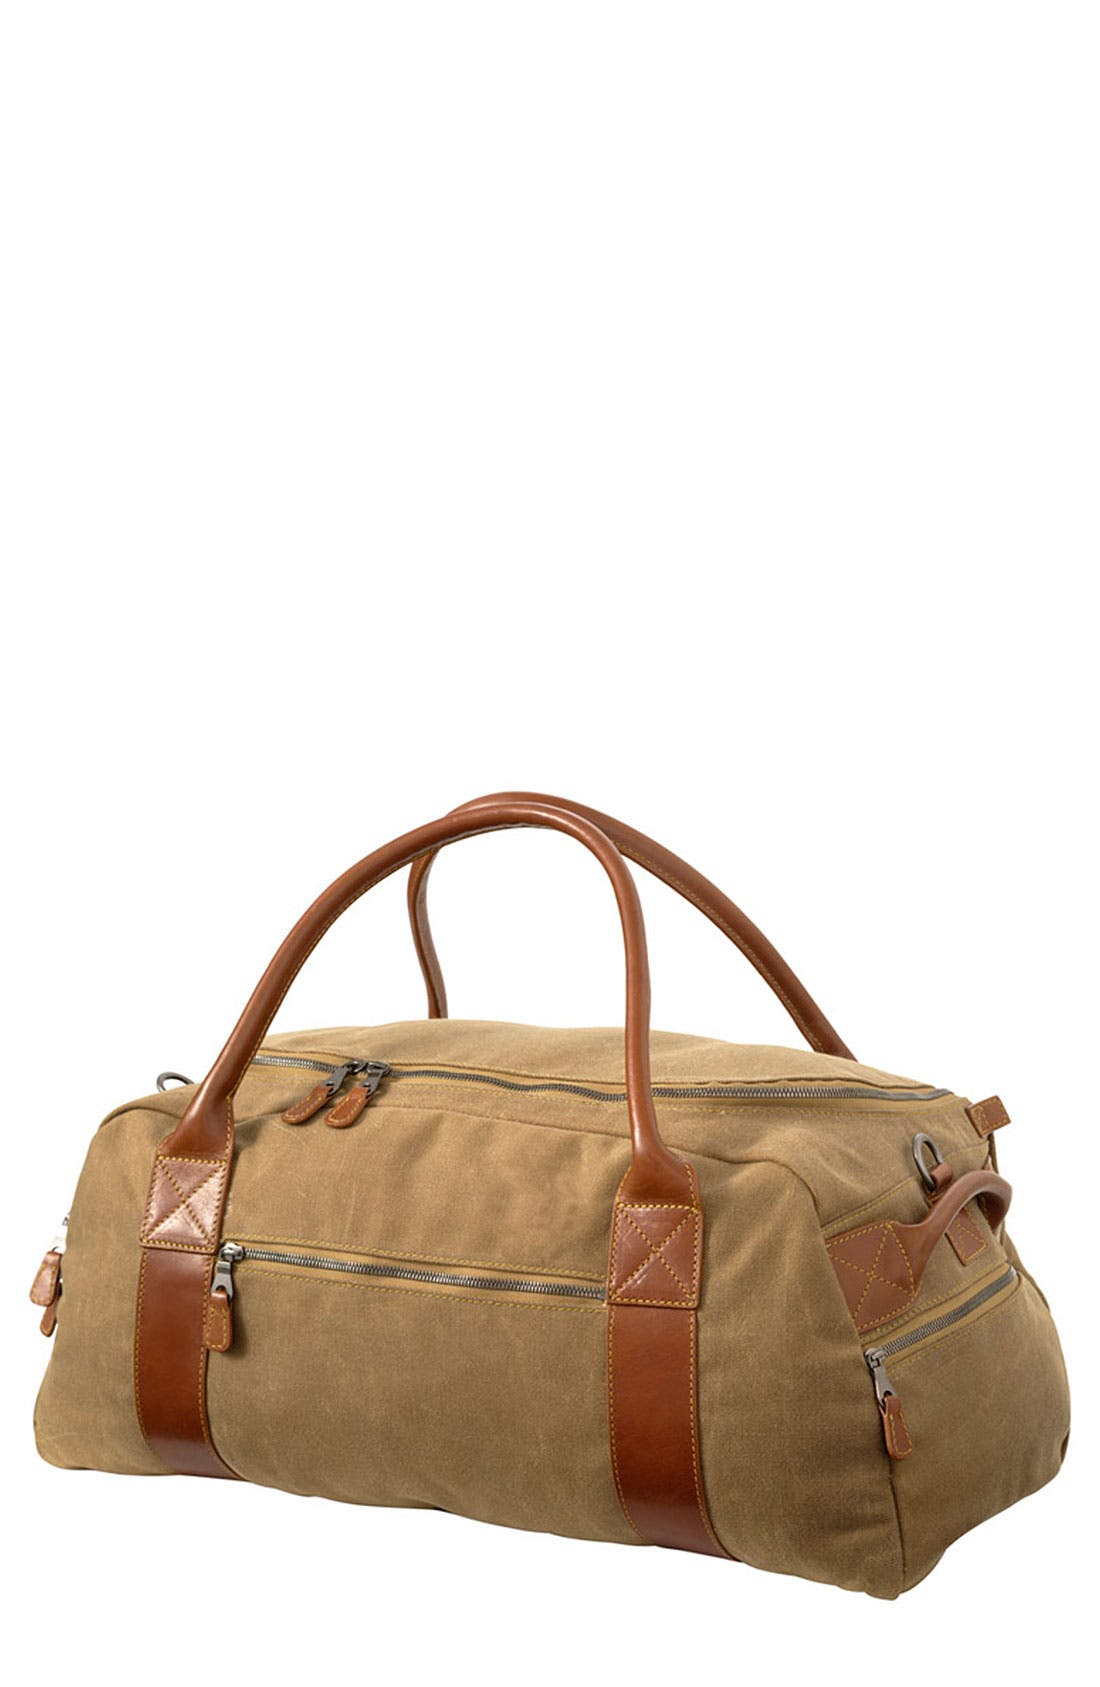 Main Image - Mulholland 'Oval' Waxed Canvas Duffel Bag